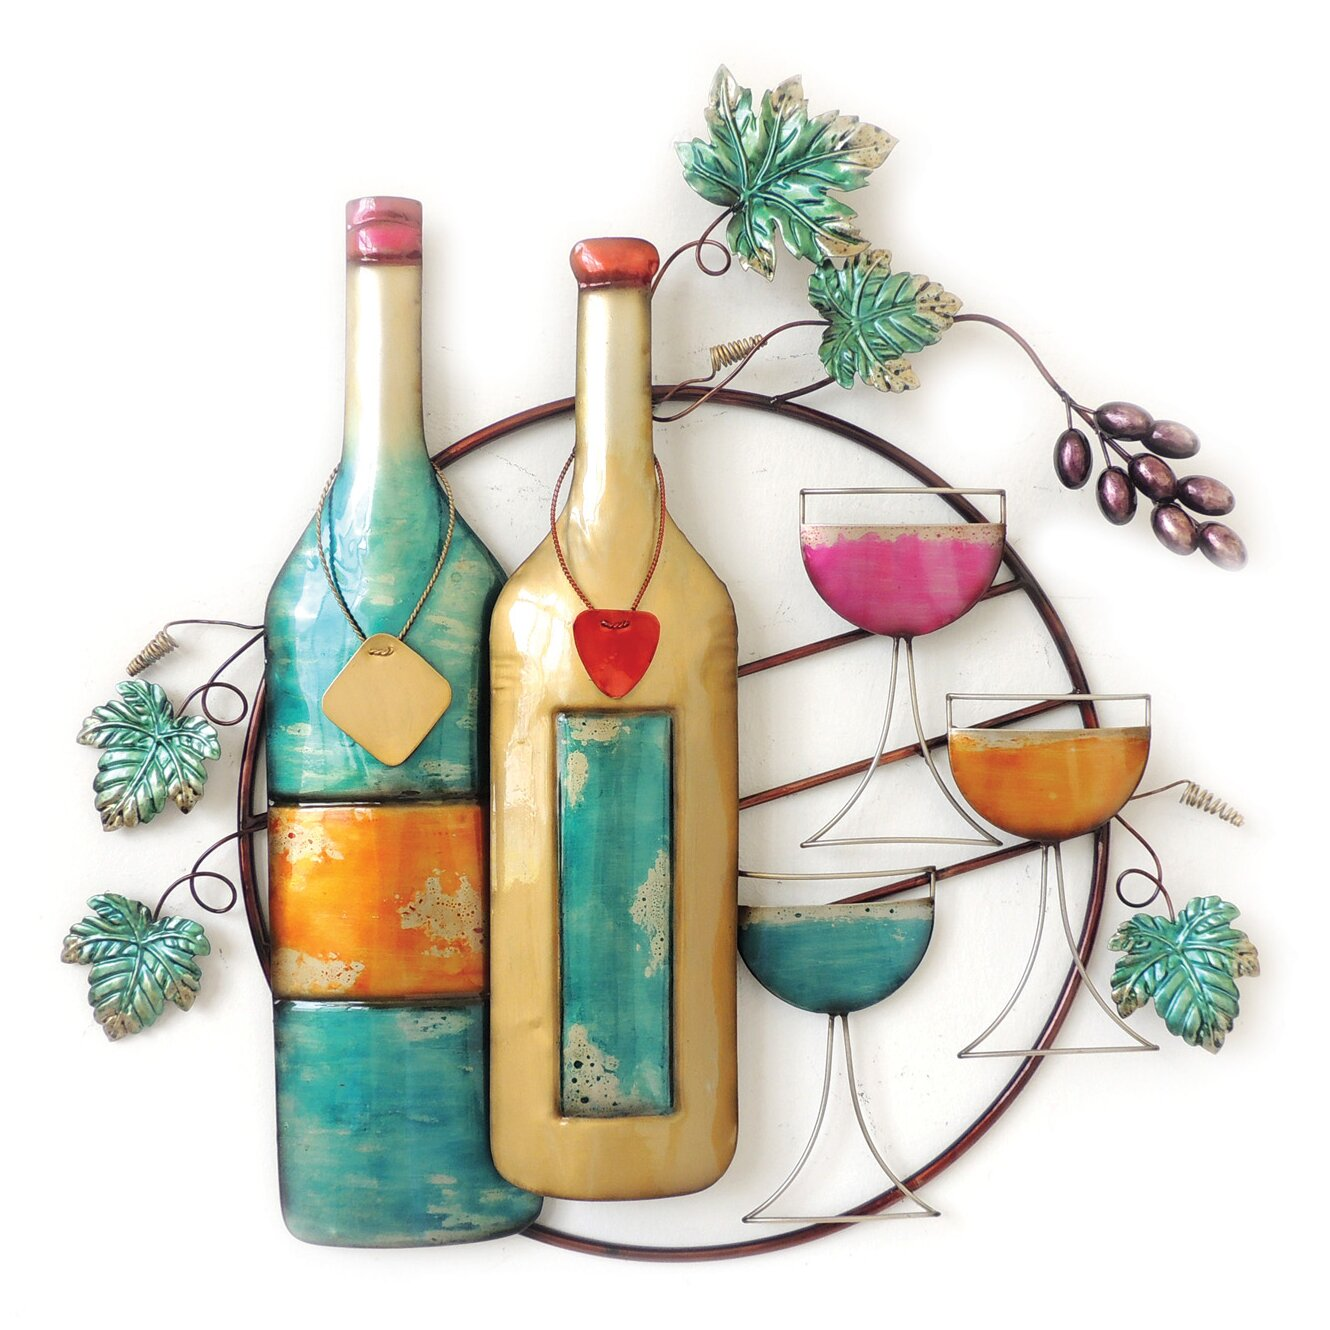 Wall Decor Wine Glasses : Charlton home wine bottles and glasses wall decor